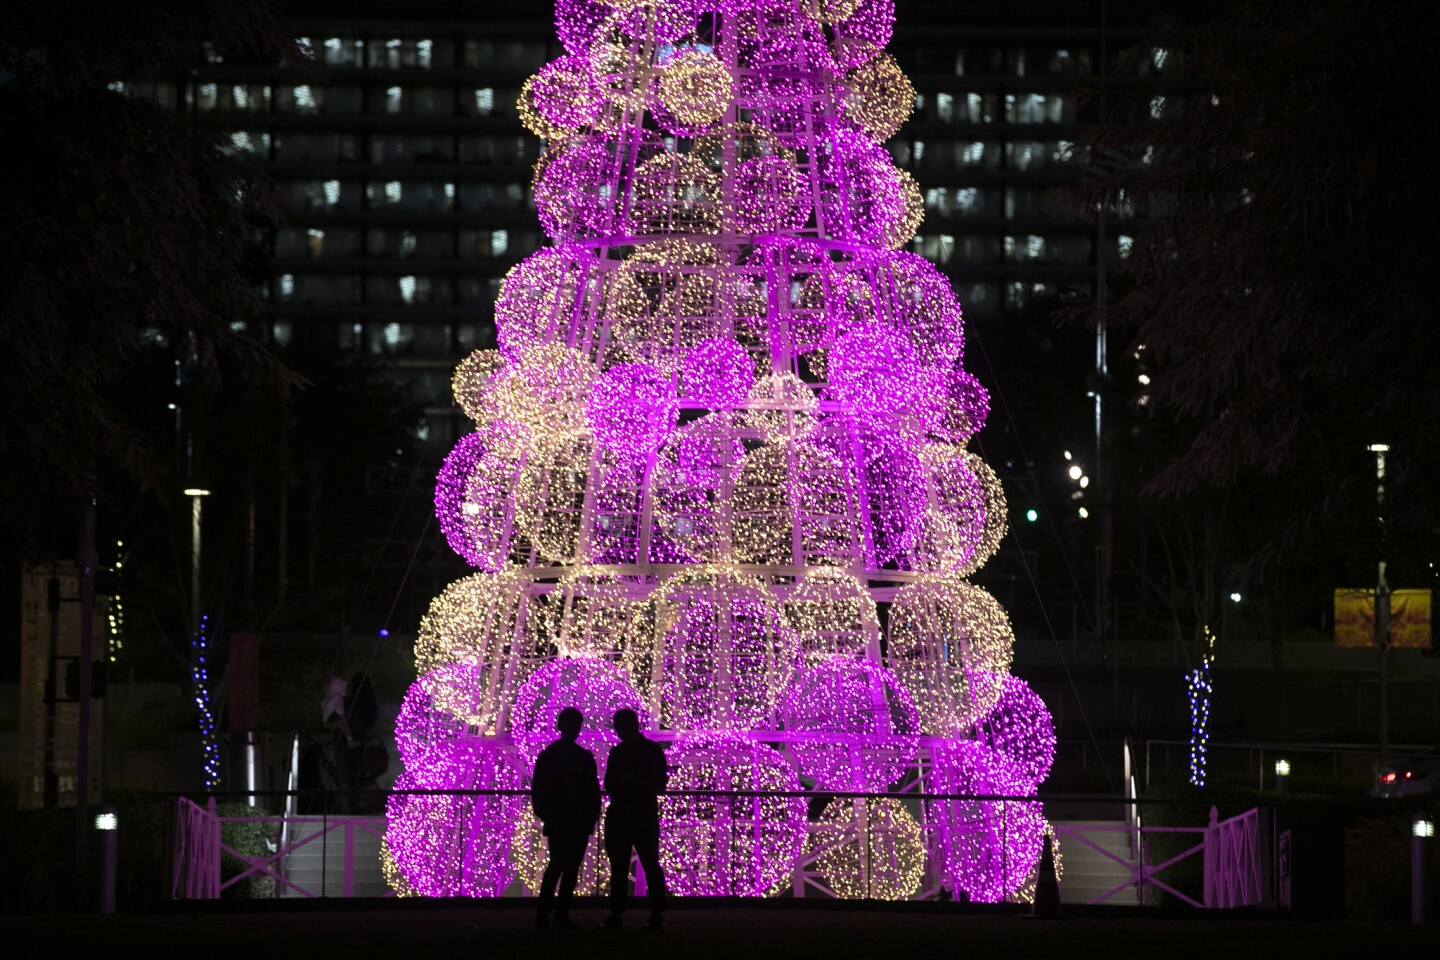 Two people stand in front of a 45-foot-tall Christmas tree at Grand Park Monday, Dec. 17, 2018, in Los Angeles. The tree is part of the Winter Glow light installations at the park created to celebrate the holiday season. (AP Photo/Jae C. Hong)